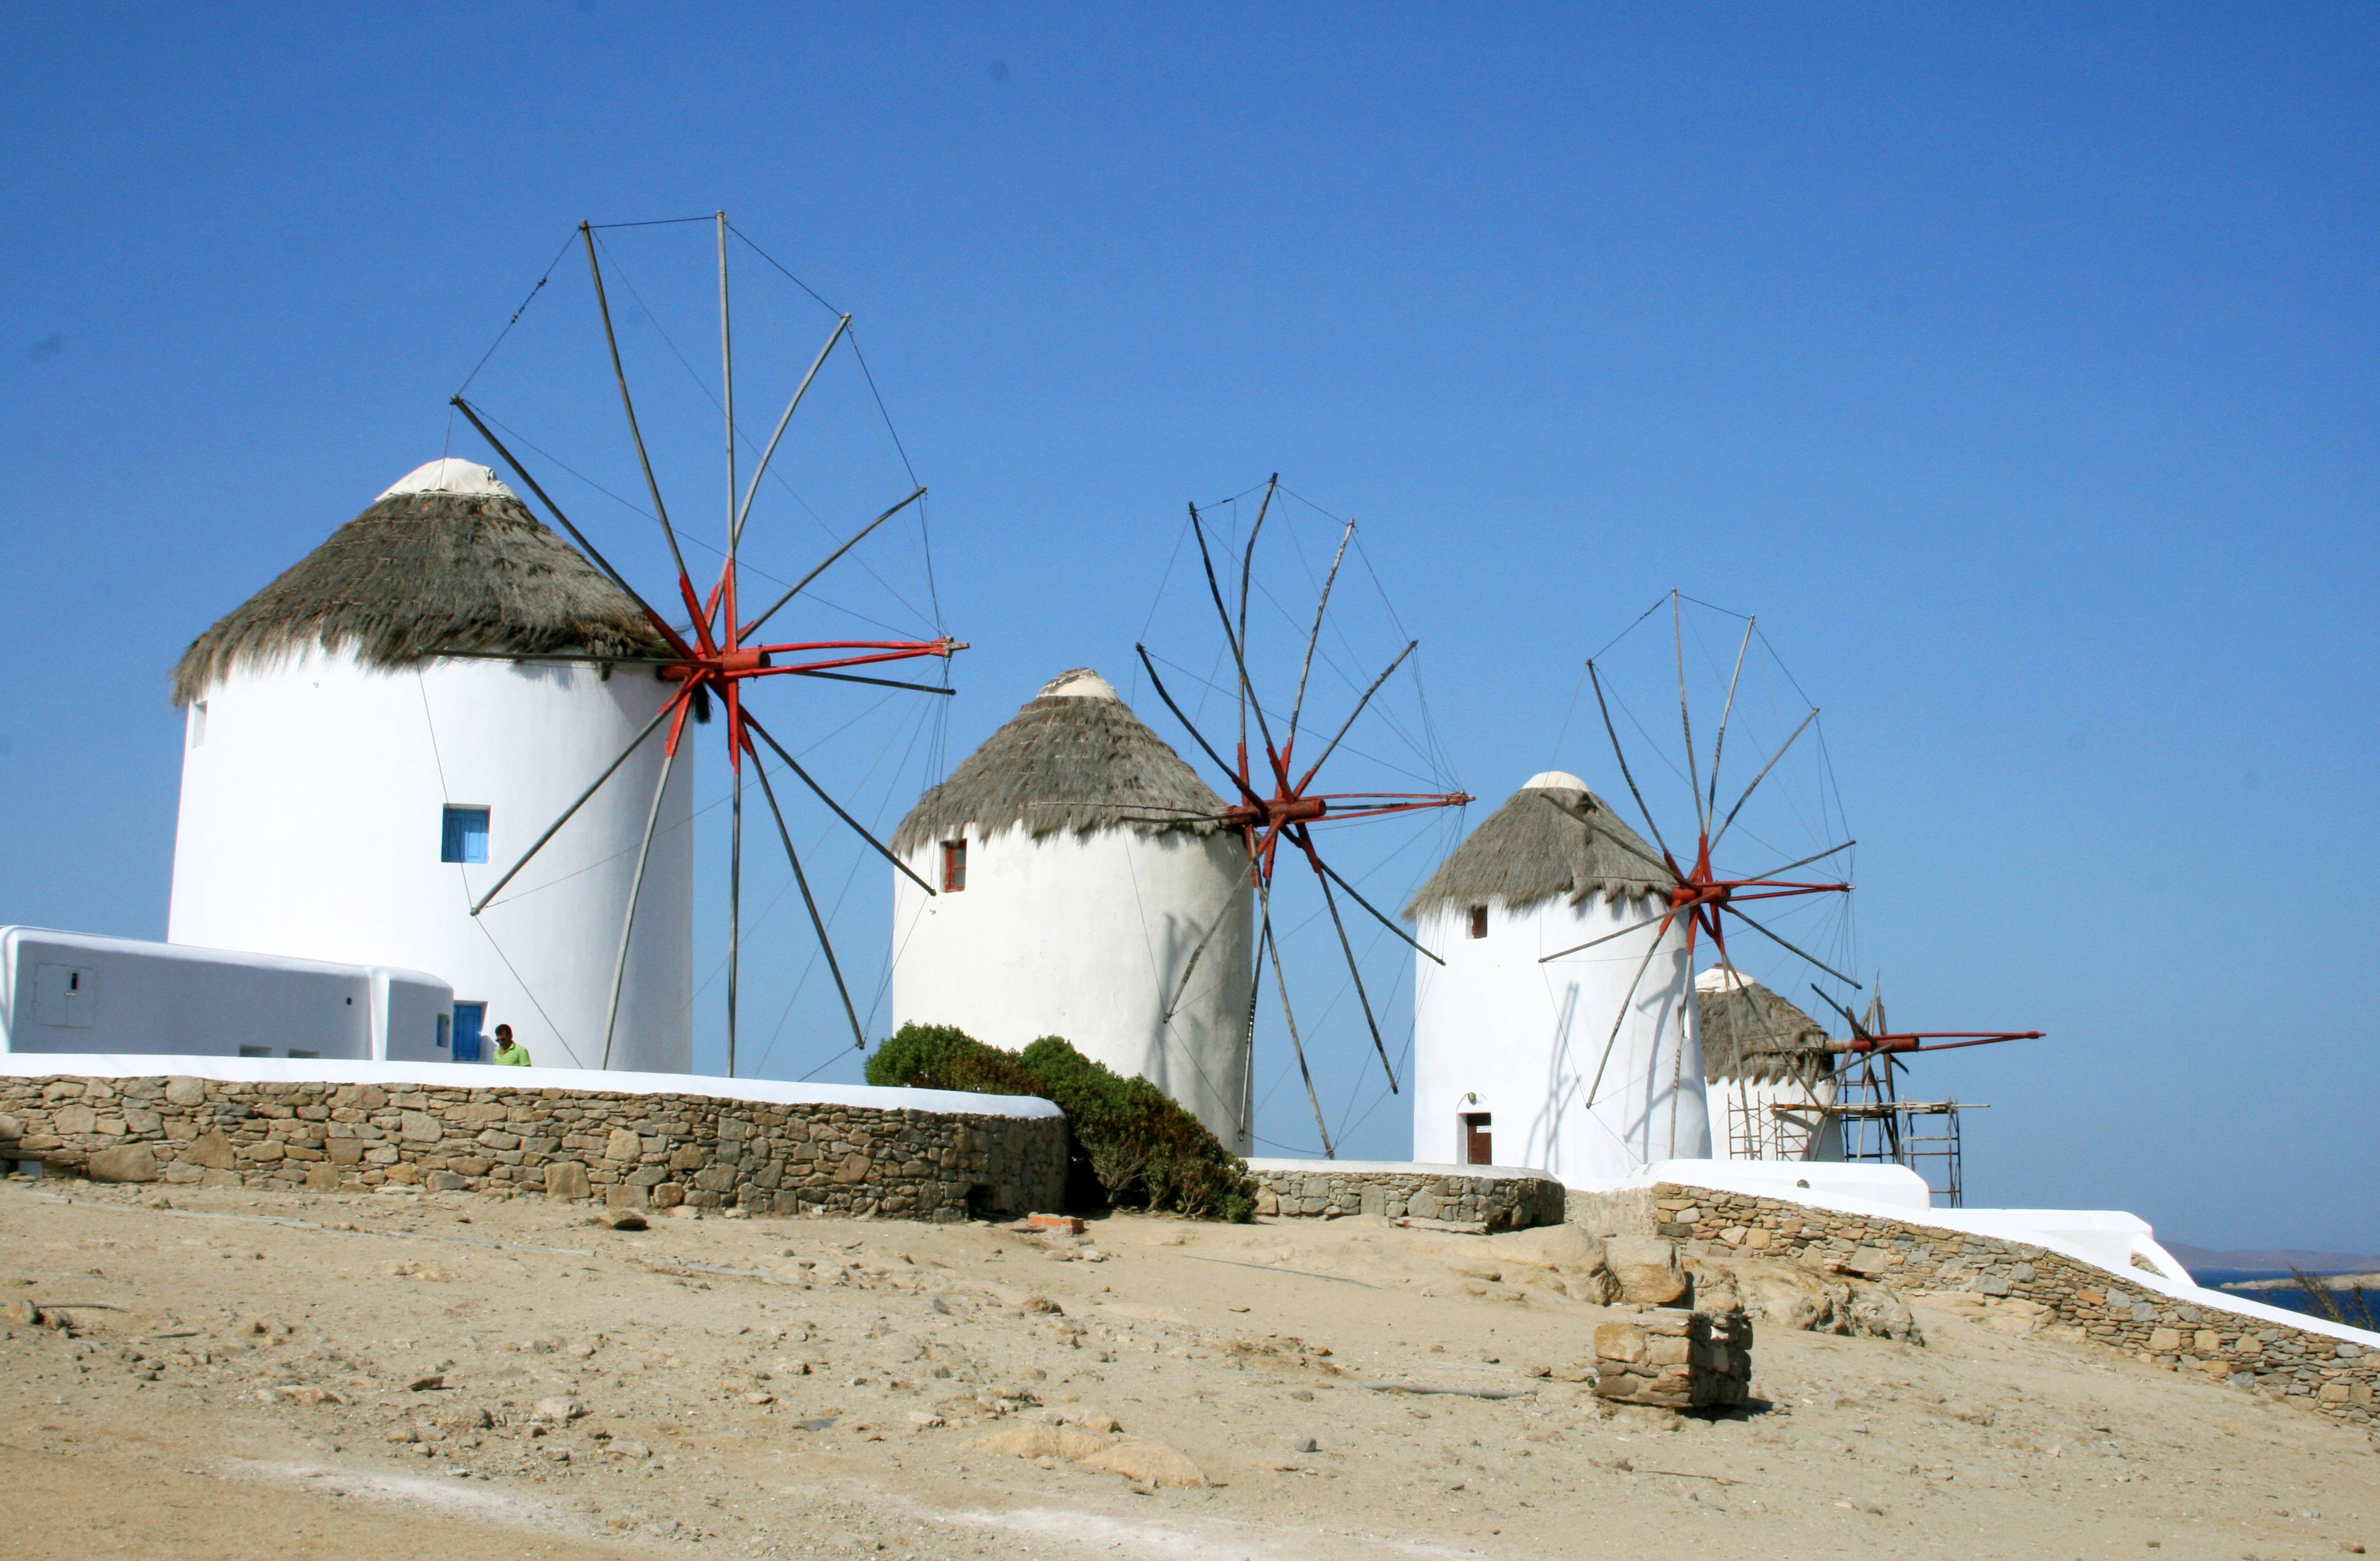 Picturesque windmills dot the landscape on the island of Mykonos in the Cyclades. The tradition of building windmills on the island dates back centuries.